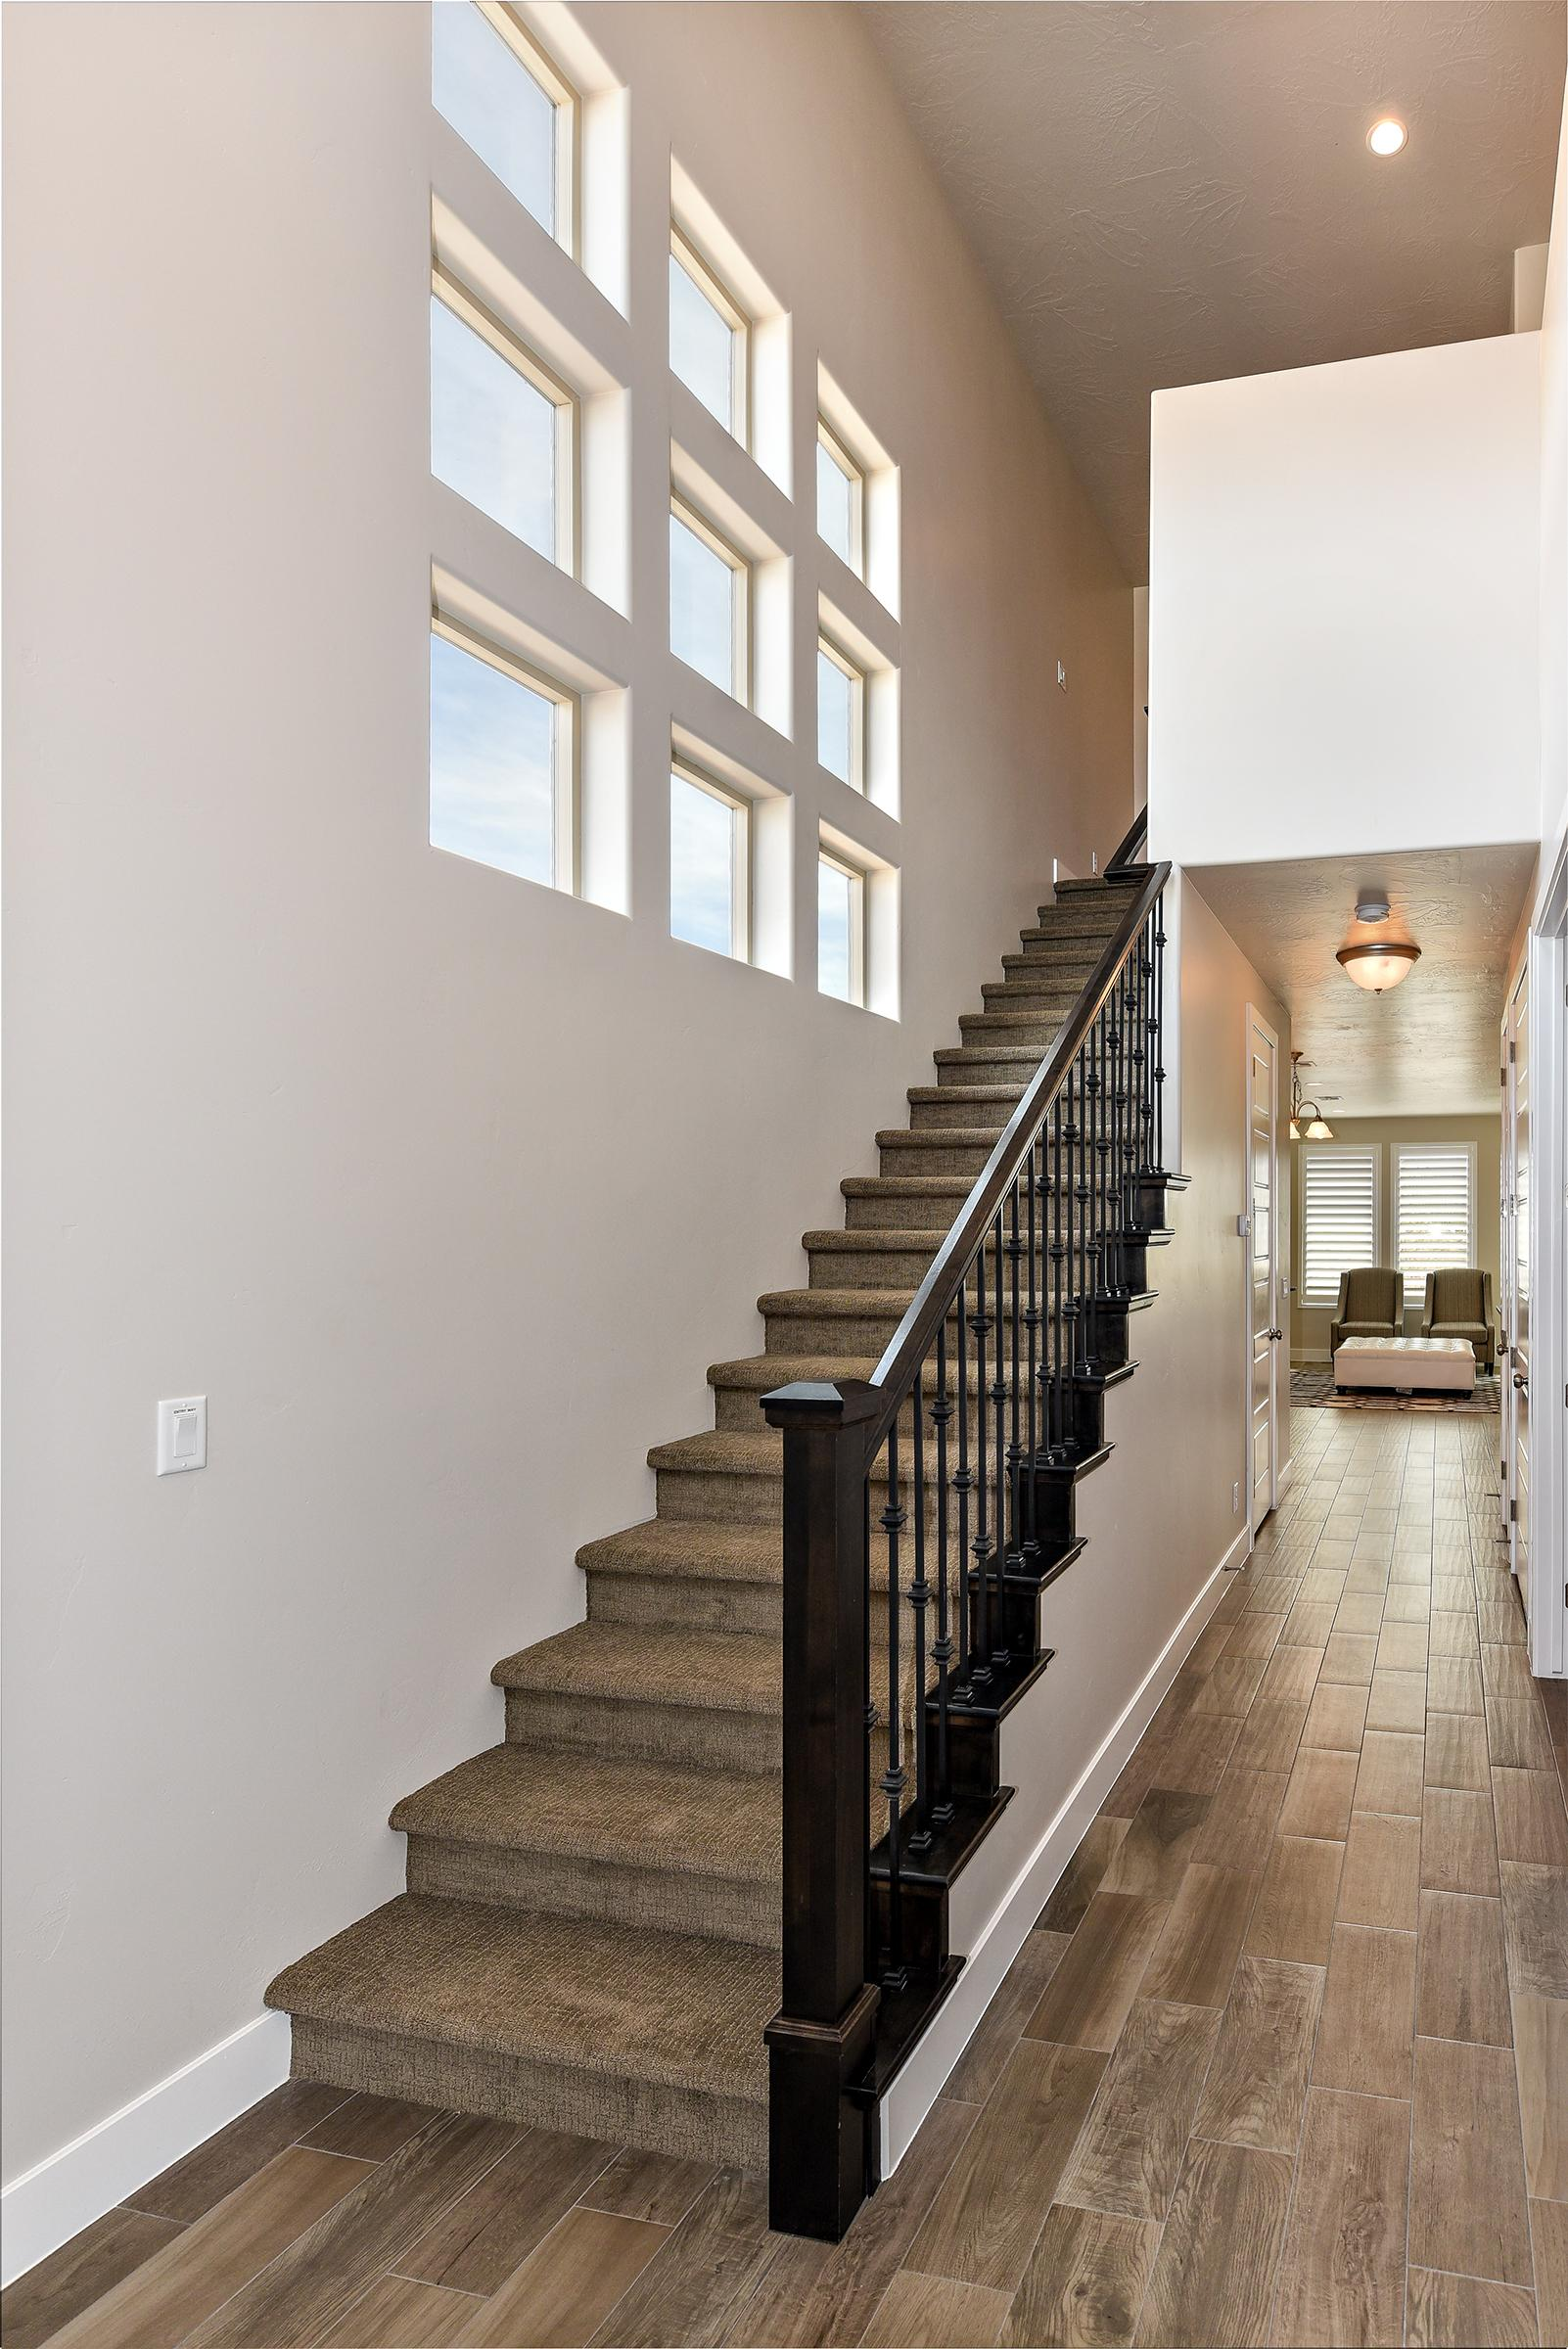 The Main Hallway leads to the Master Bedroom, Kitchen, Dining Room, and Living Room.  The Stairway leads to the Upstairs Bedrooms and Family Room